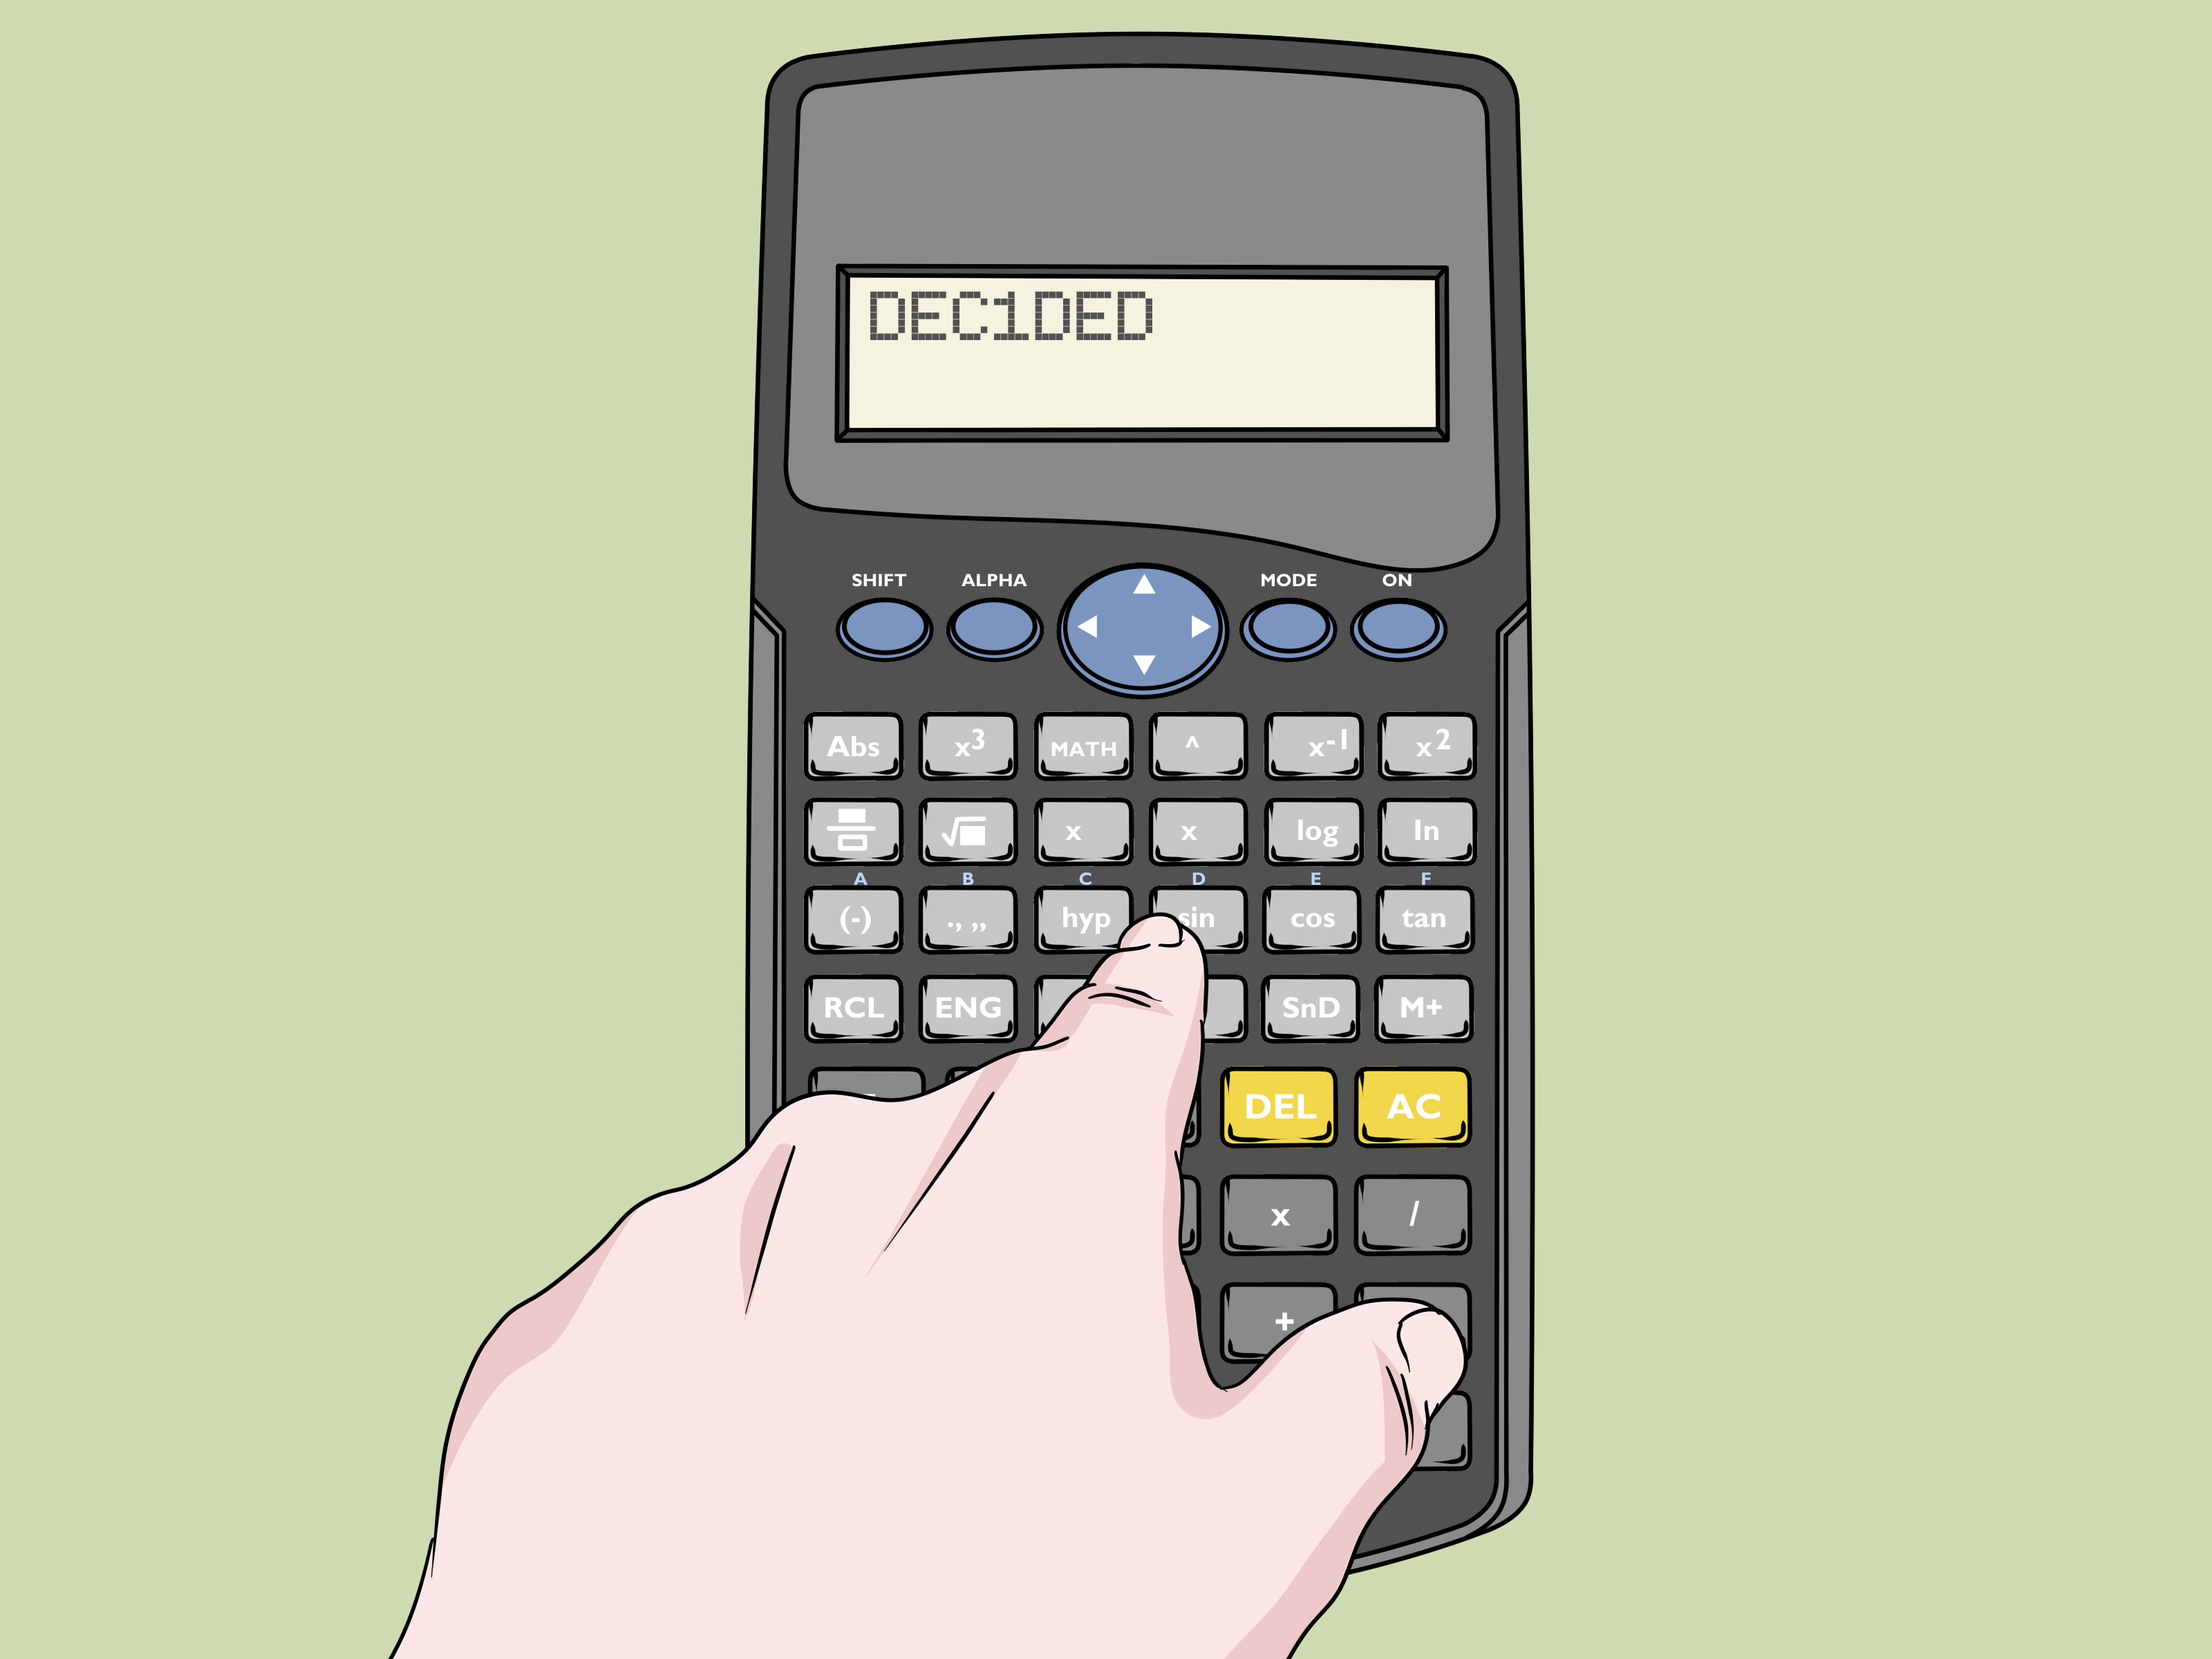 How To Write Words With A Calculator